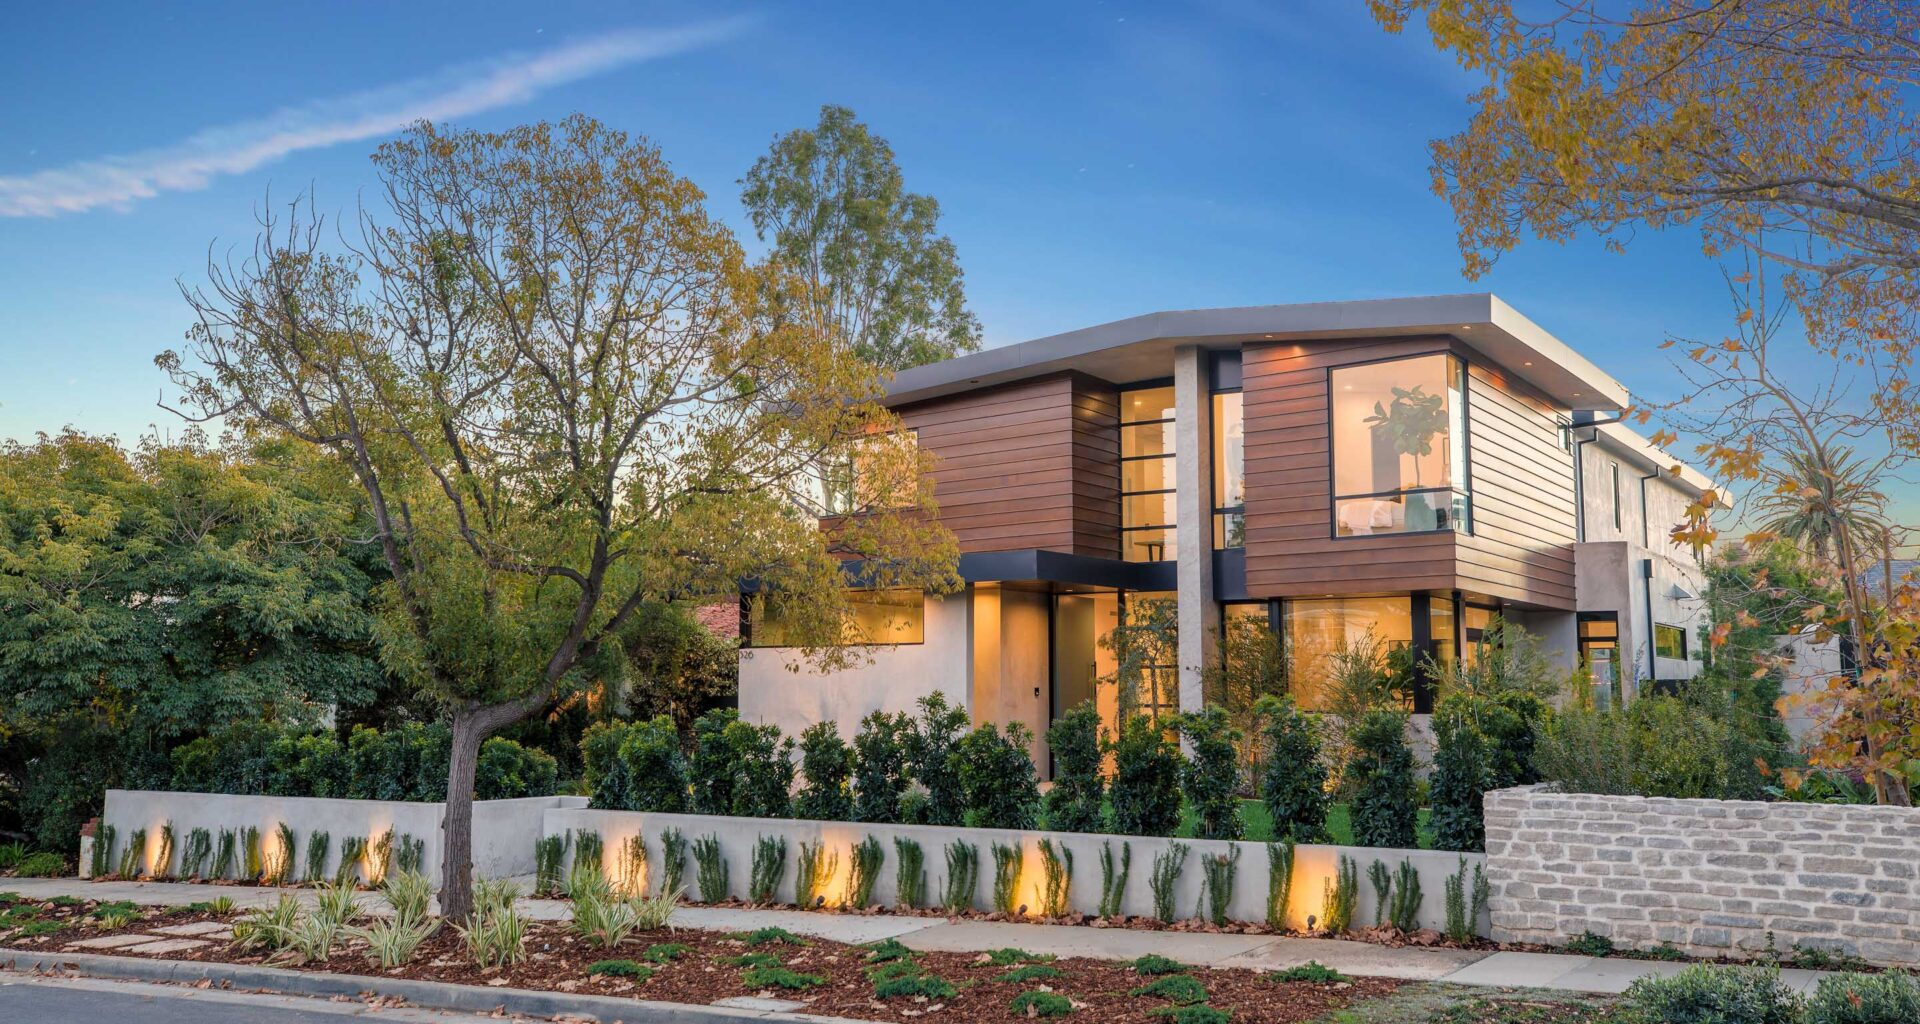 Santa Monica Contemporary Home on 526 23rd St - Westside DIGS Magazine